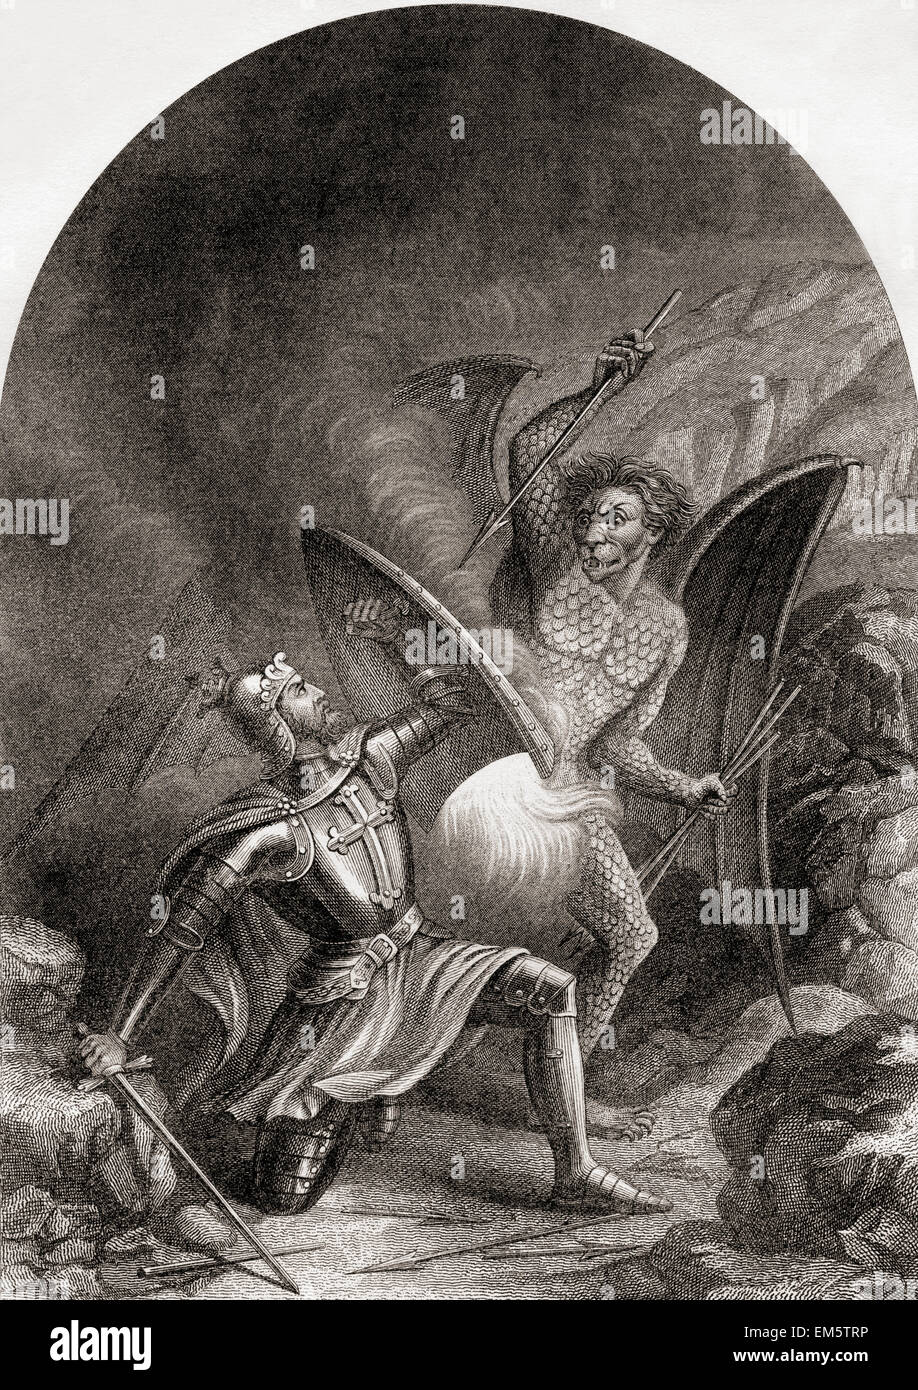 Christian's fight with Appolyon.  From The Pilgrim's Progress by John Bunyan. - Stock Image